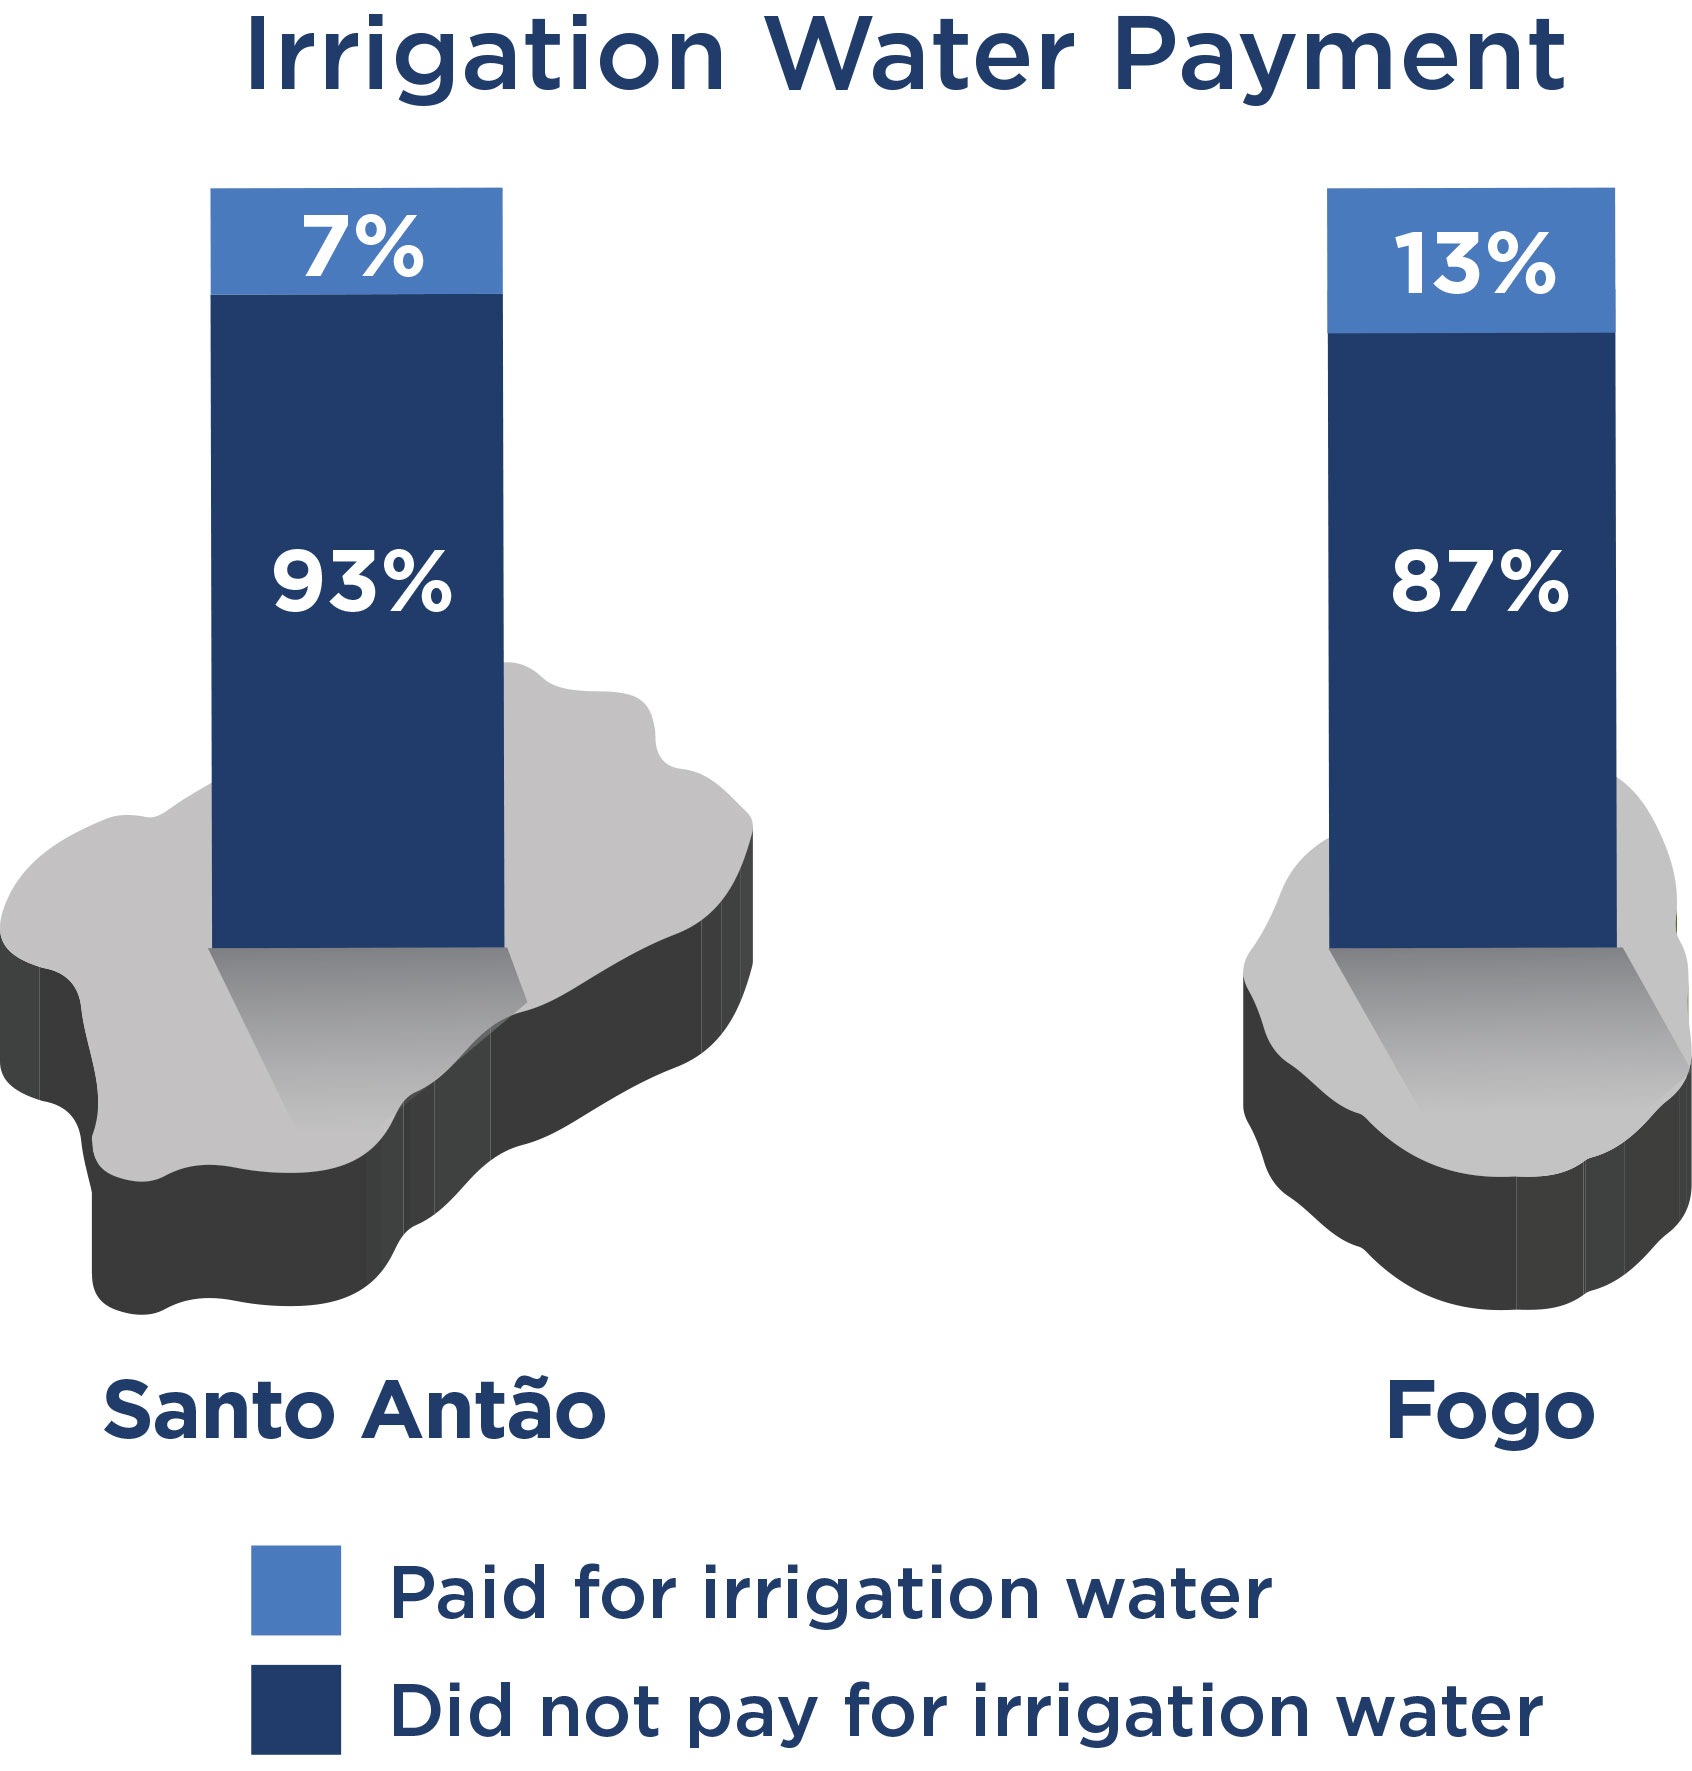 Chart of irrigation water payment comparing Santo Antao to Fogo